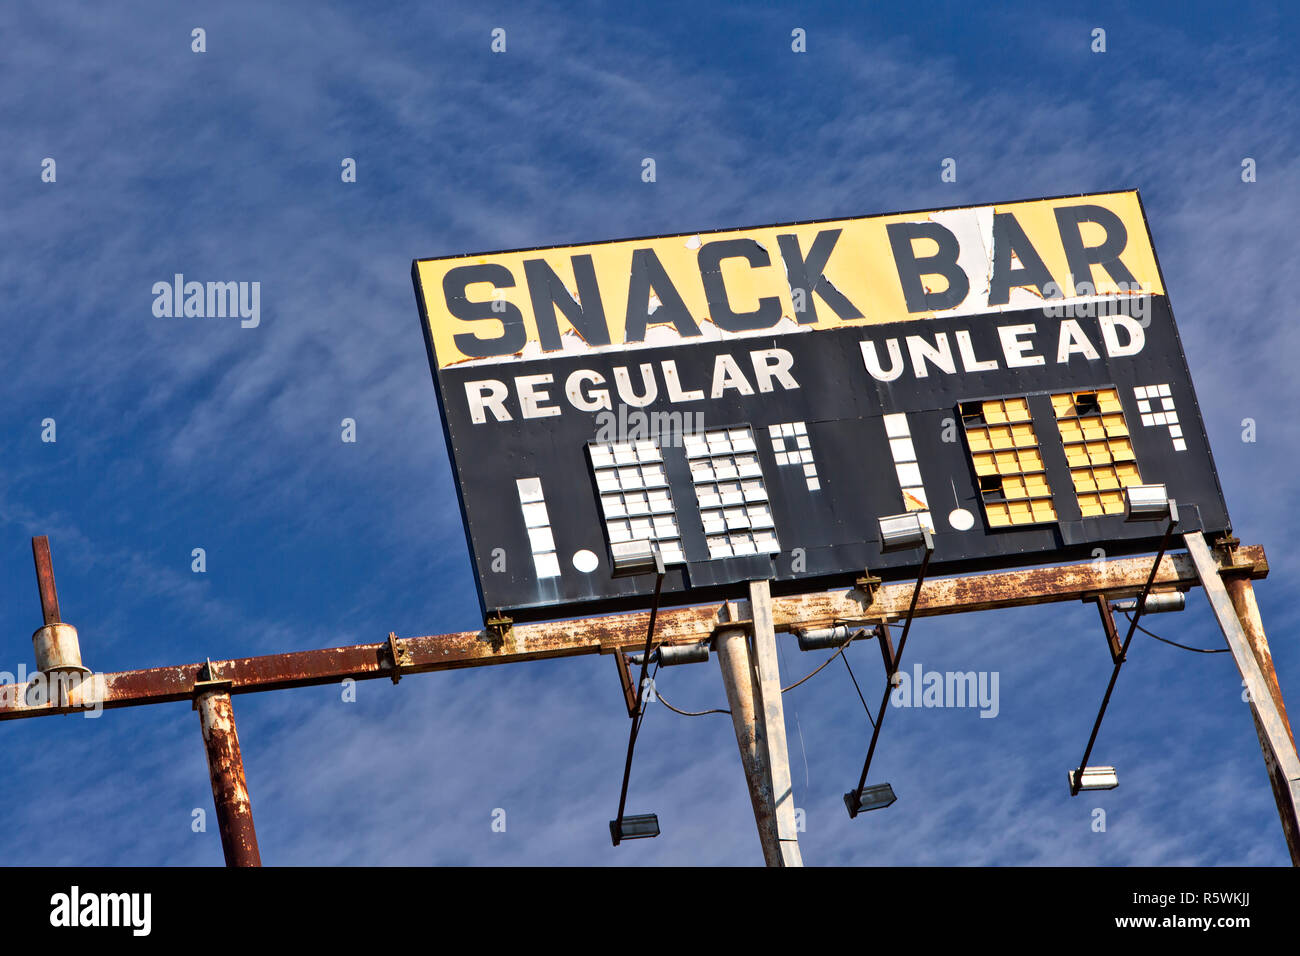 Elevated Vintage Gas Station Sign 'Snack Bar - Regular - Unlead' gasoline,  rusty metal frame, against a scattered blue sky. - Stock Image